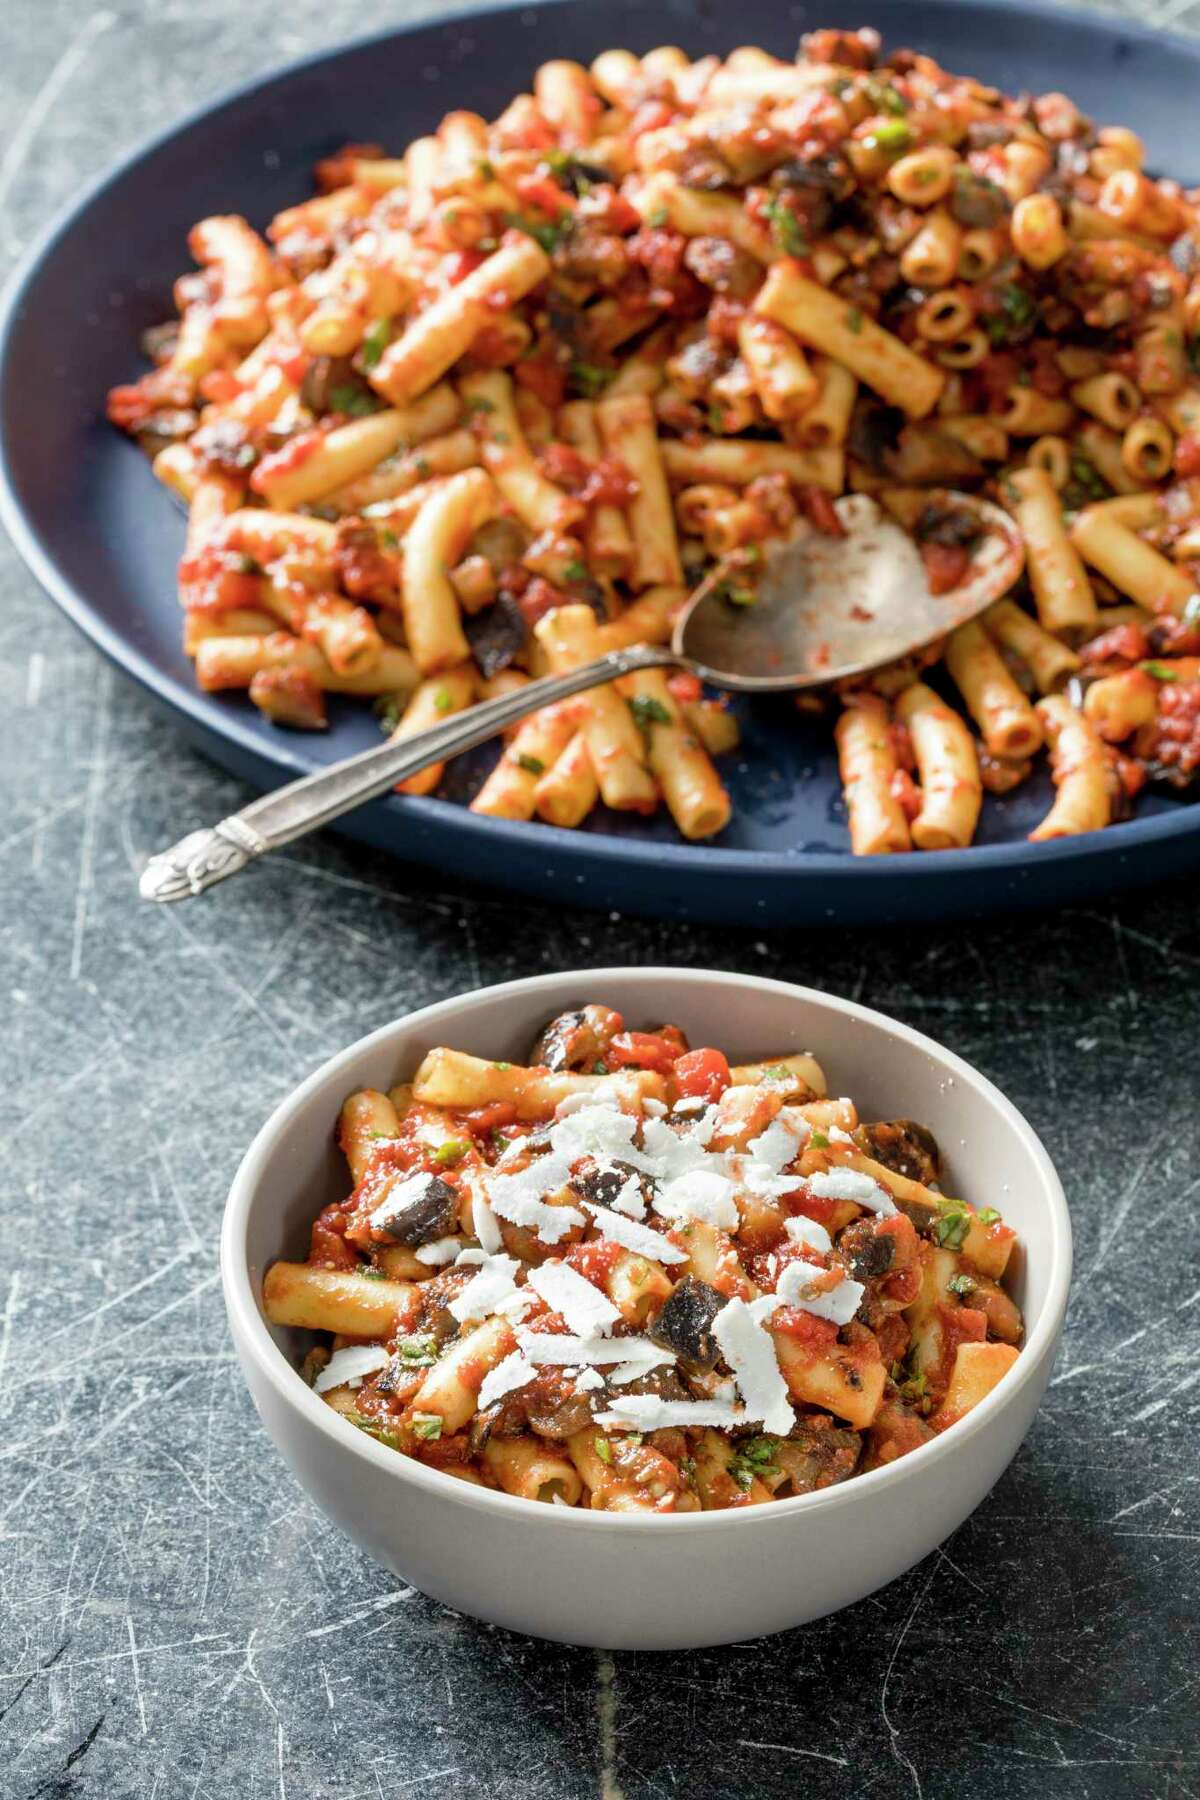 Pasta alla Norma is a recipe using minced anchovy fillets from